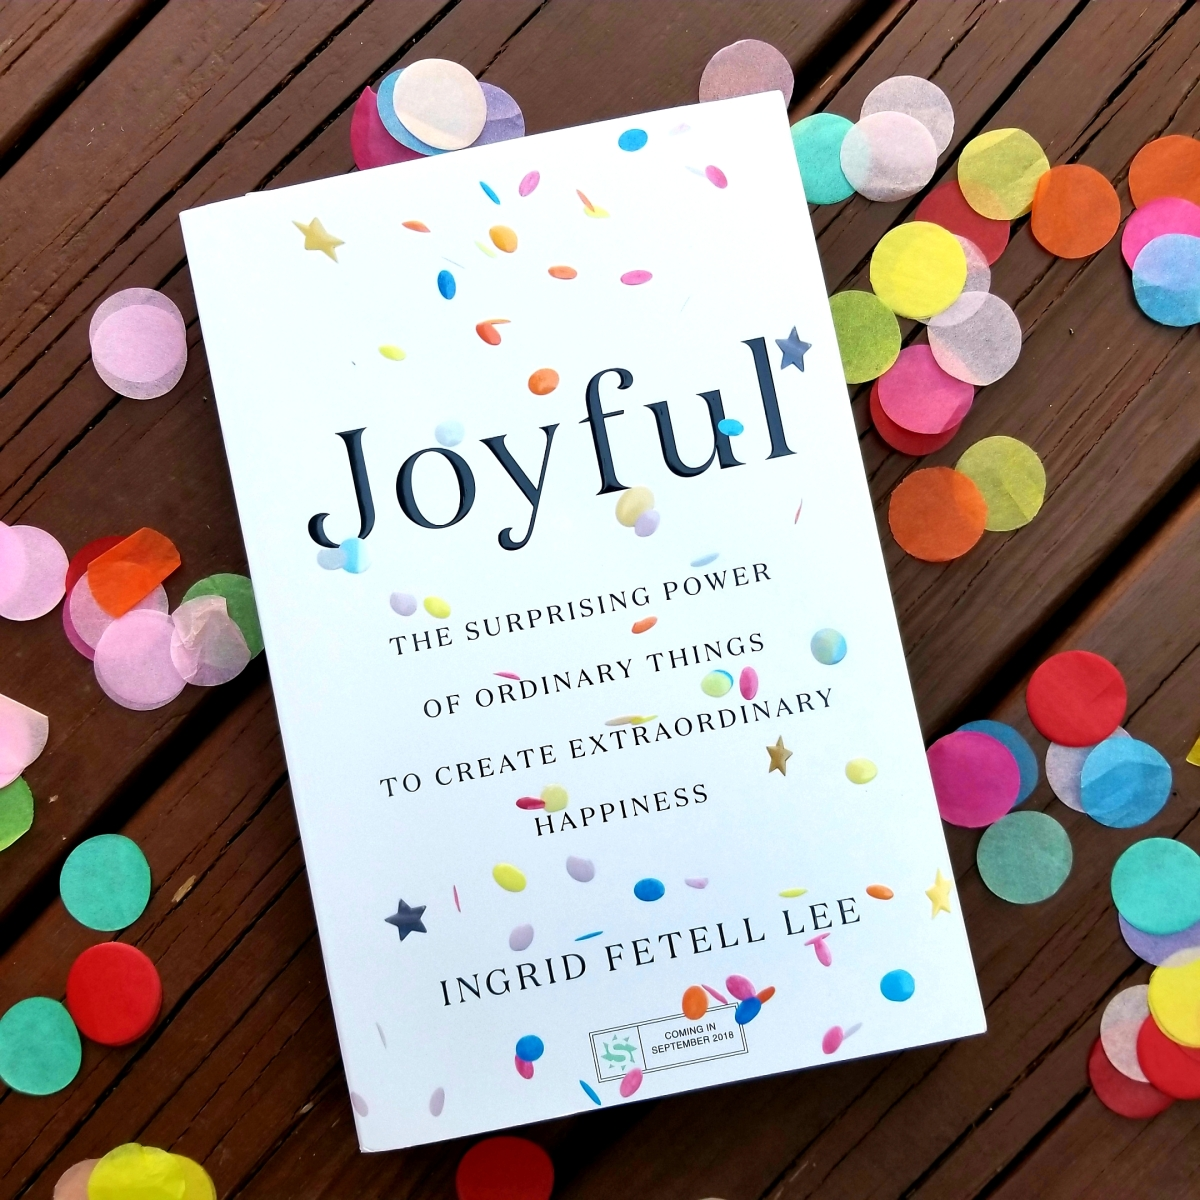 Joyful by Ingrid Fetell Lee #bookreview #tarheelreader @ingridfetell @littlebrown #joyfulbook